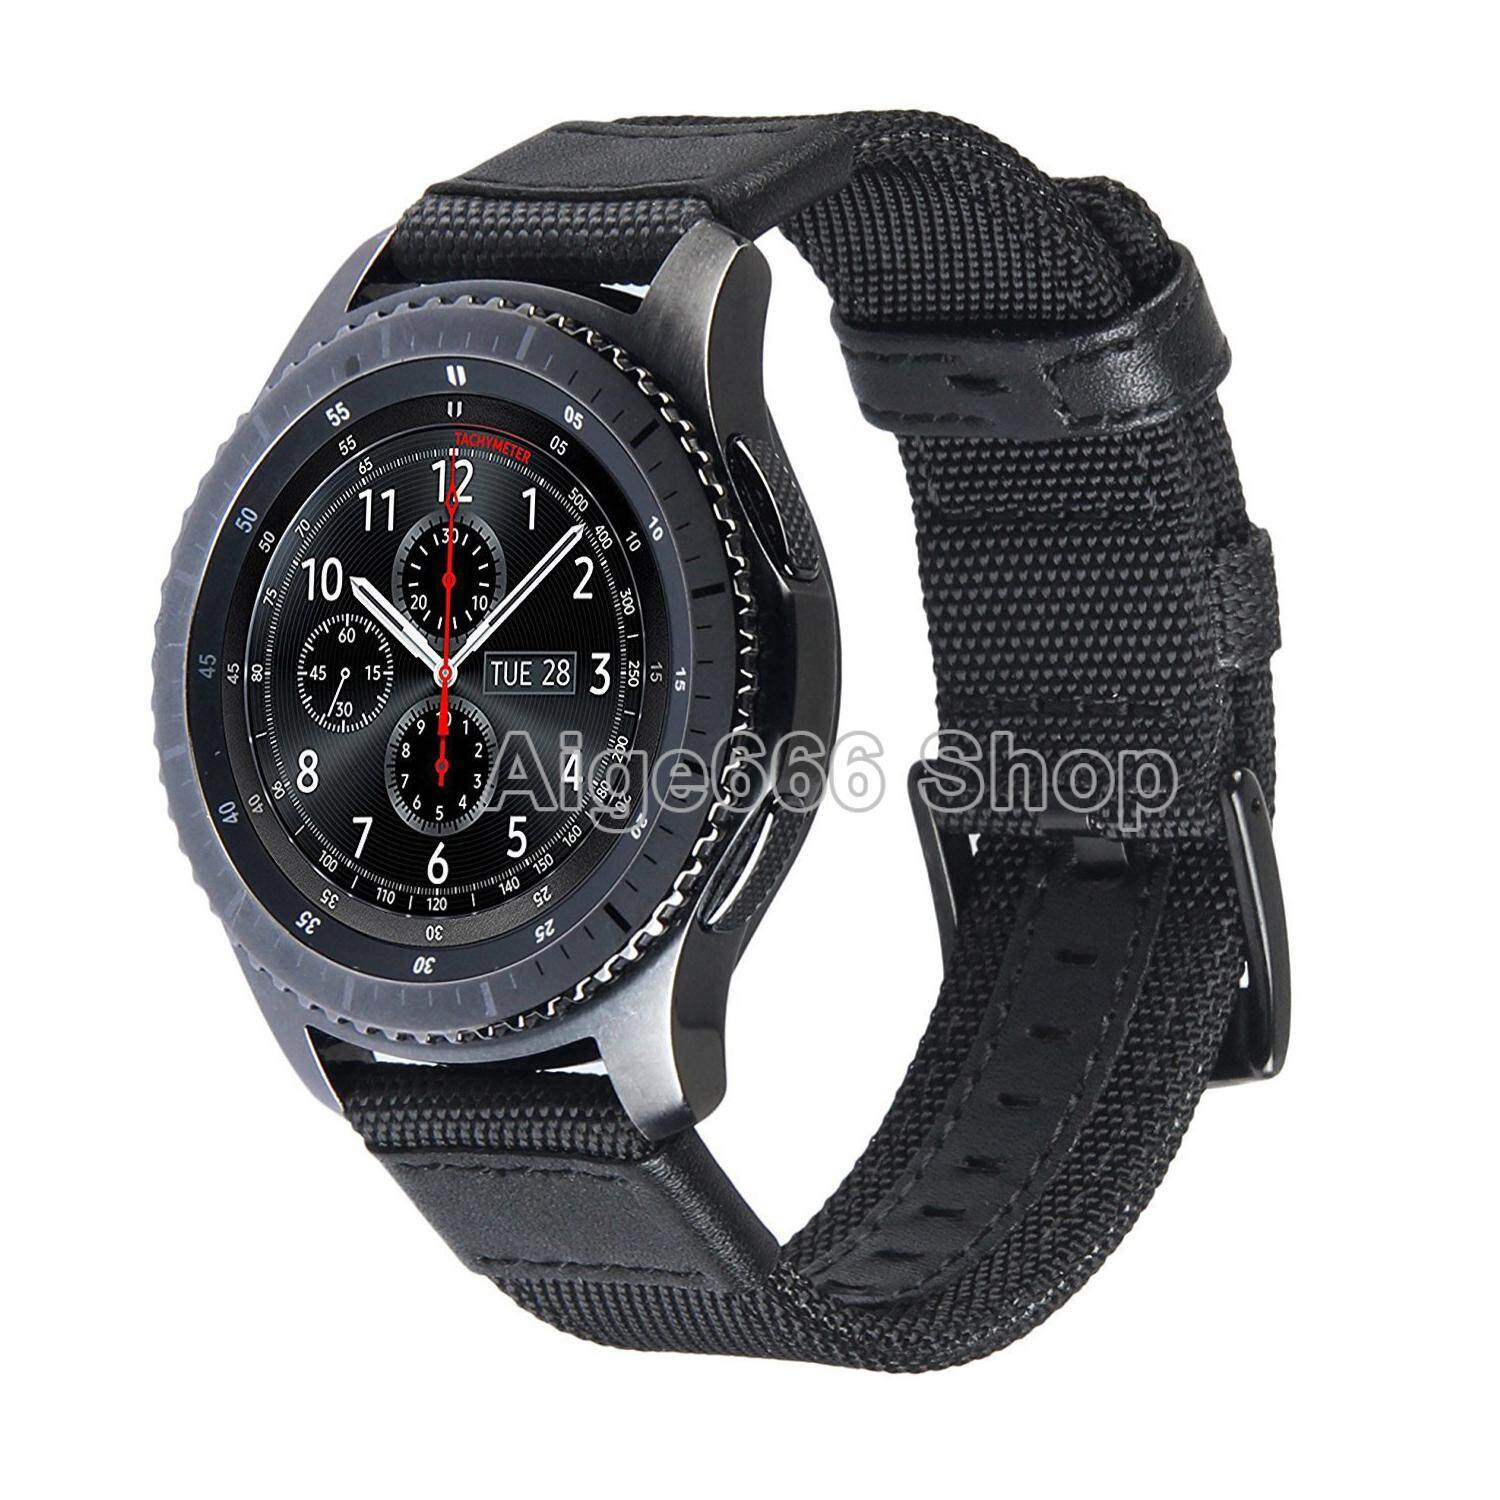 Woven Nylon Band Strap Sport Wristband with Stainless Steel Metal Buckle for Samsung Gear S3 Classic SM-R770 S3 Frontier SM-R760 SM-R765 Smart Watch